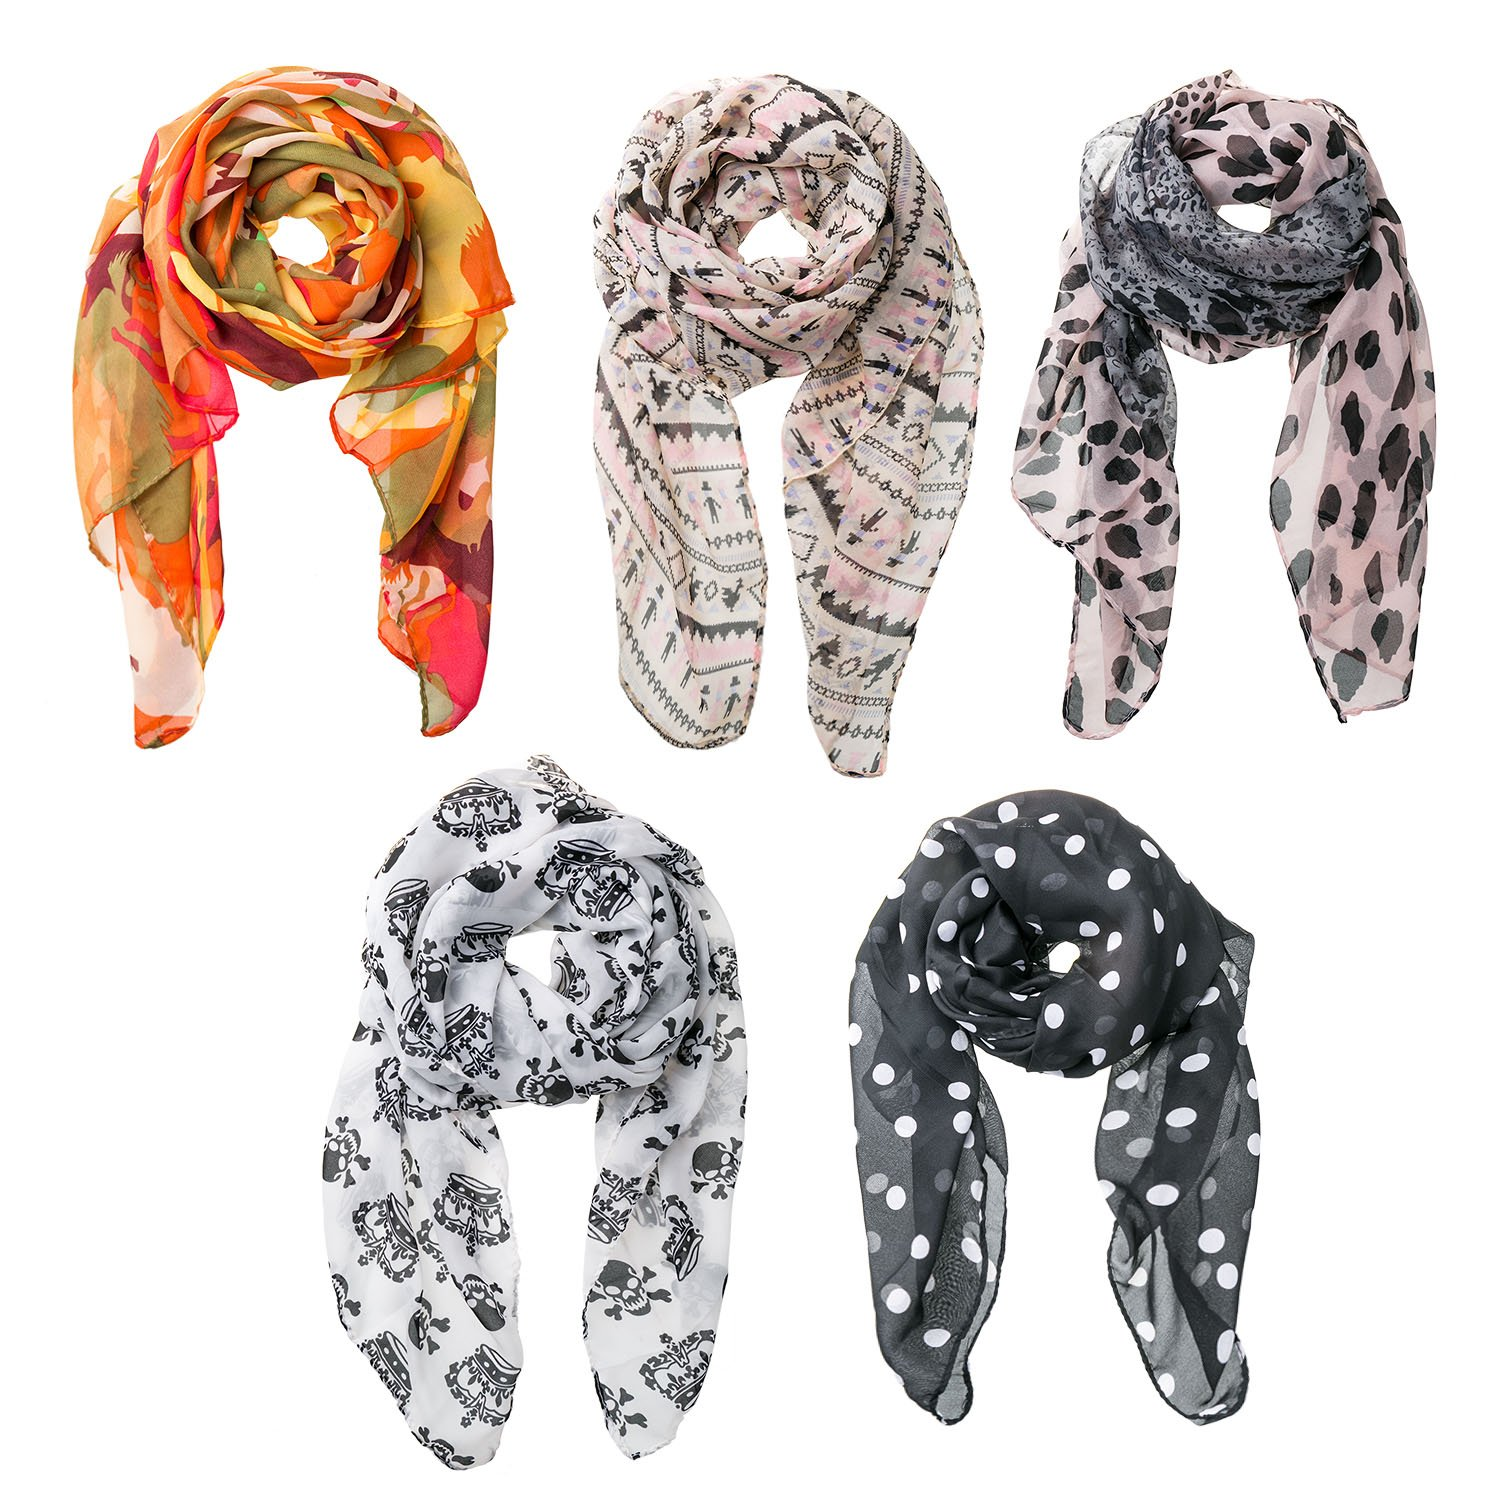 Bundle Monster 5PC Womens Fashion Scarf Set - Soft & Silky, Made w/100% Polyester - Lightweight, Versatile Designs